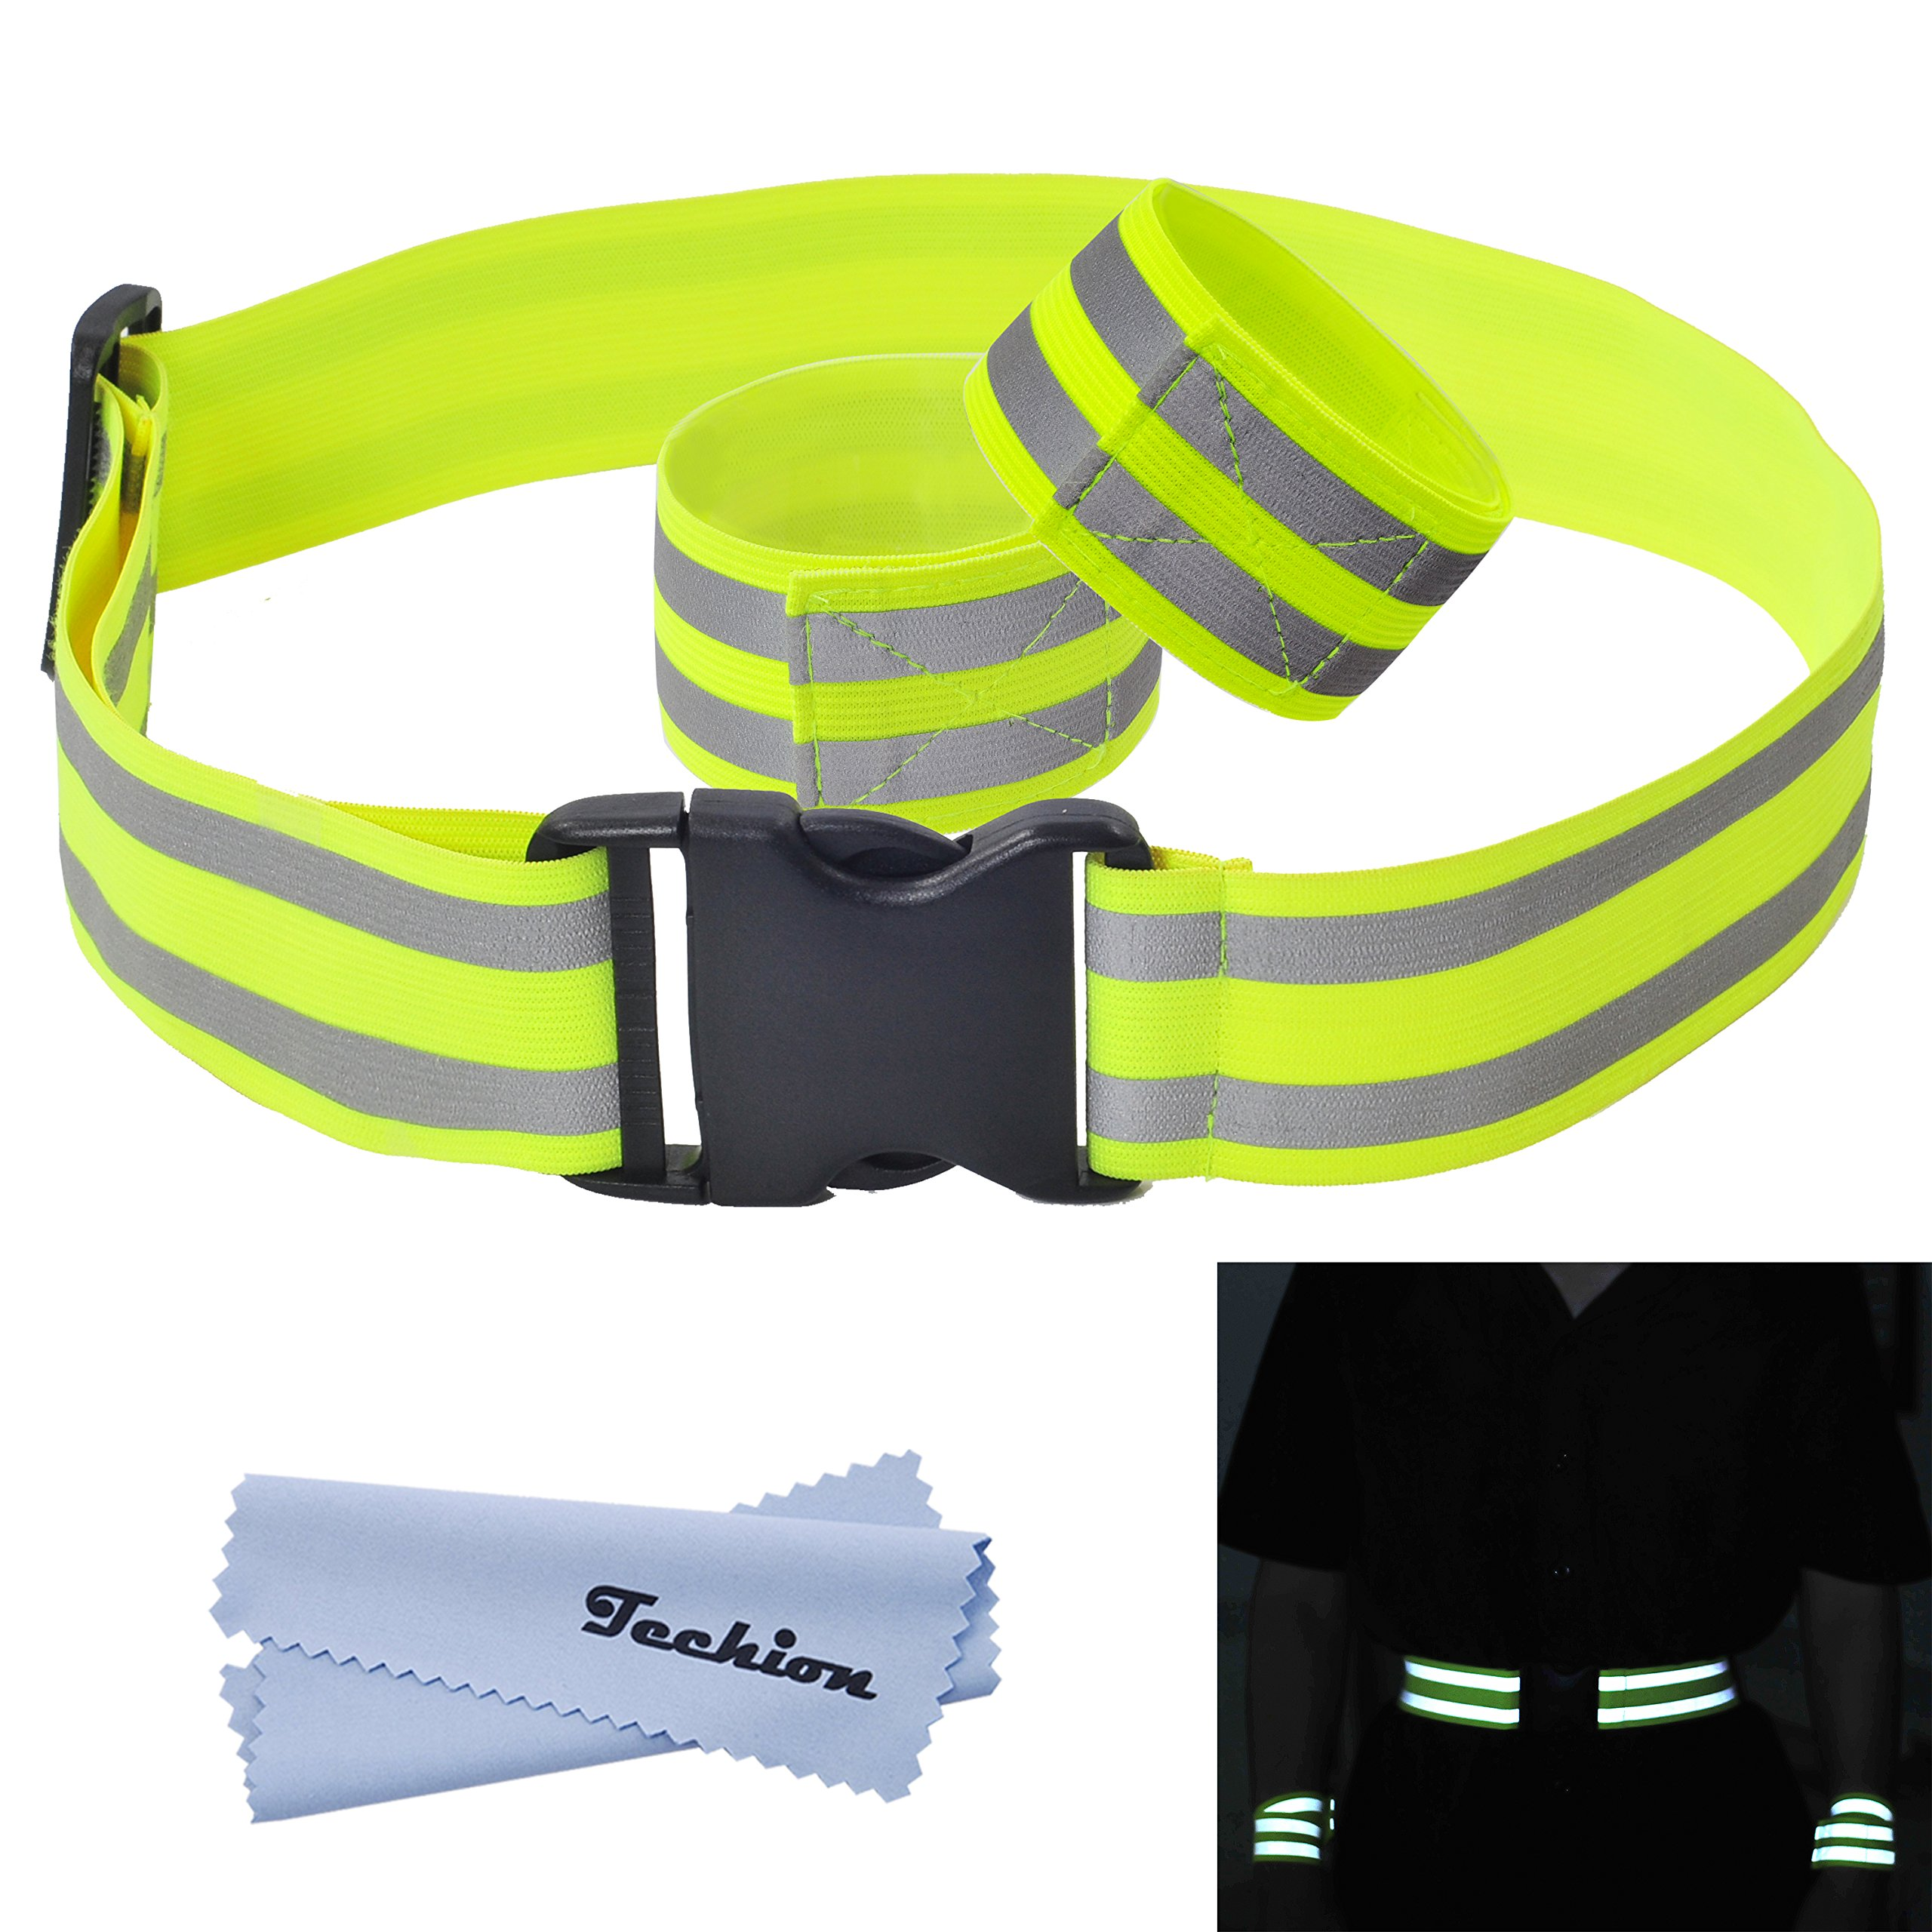 Techion Reflective Elastic Fabric Waist Belt Band with Buckle Clip and Two Reflective Strips for Cycling/Biking/Walking…